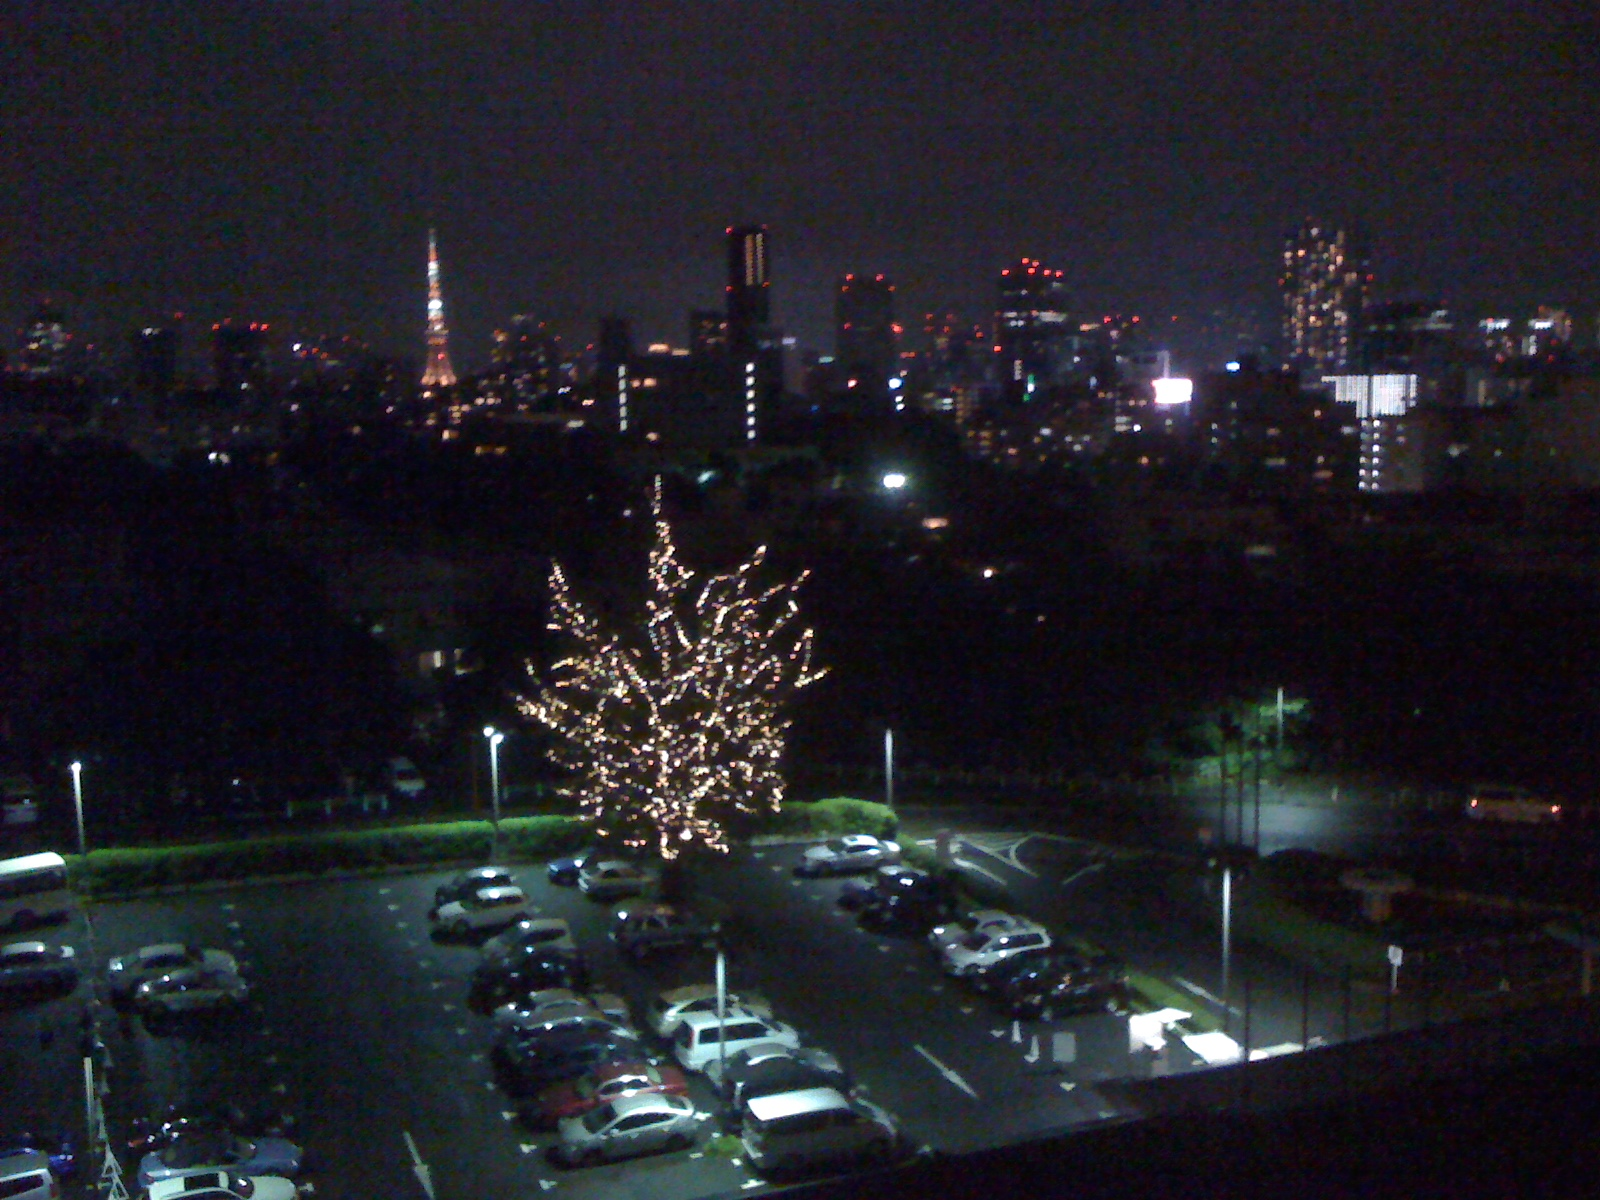 The view from the Grand Prince Hotel Takanawa